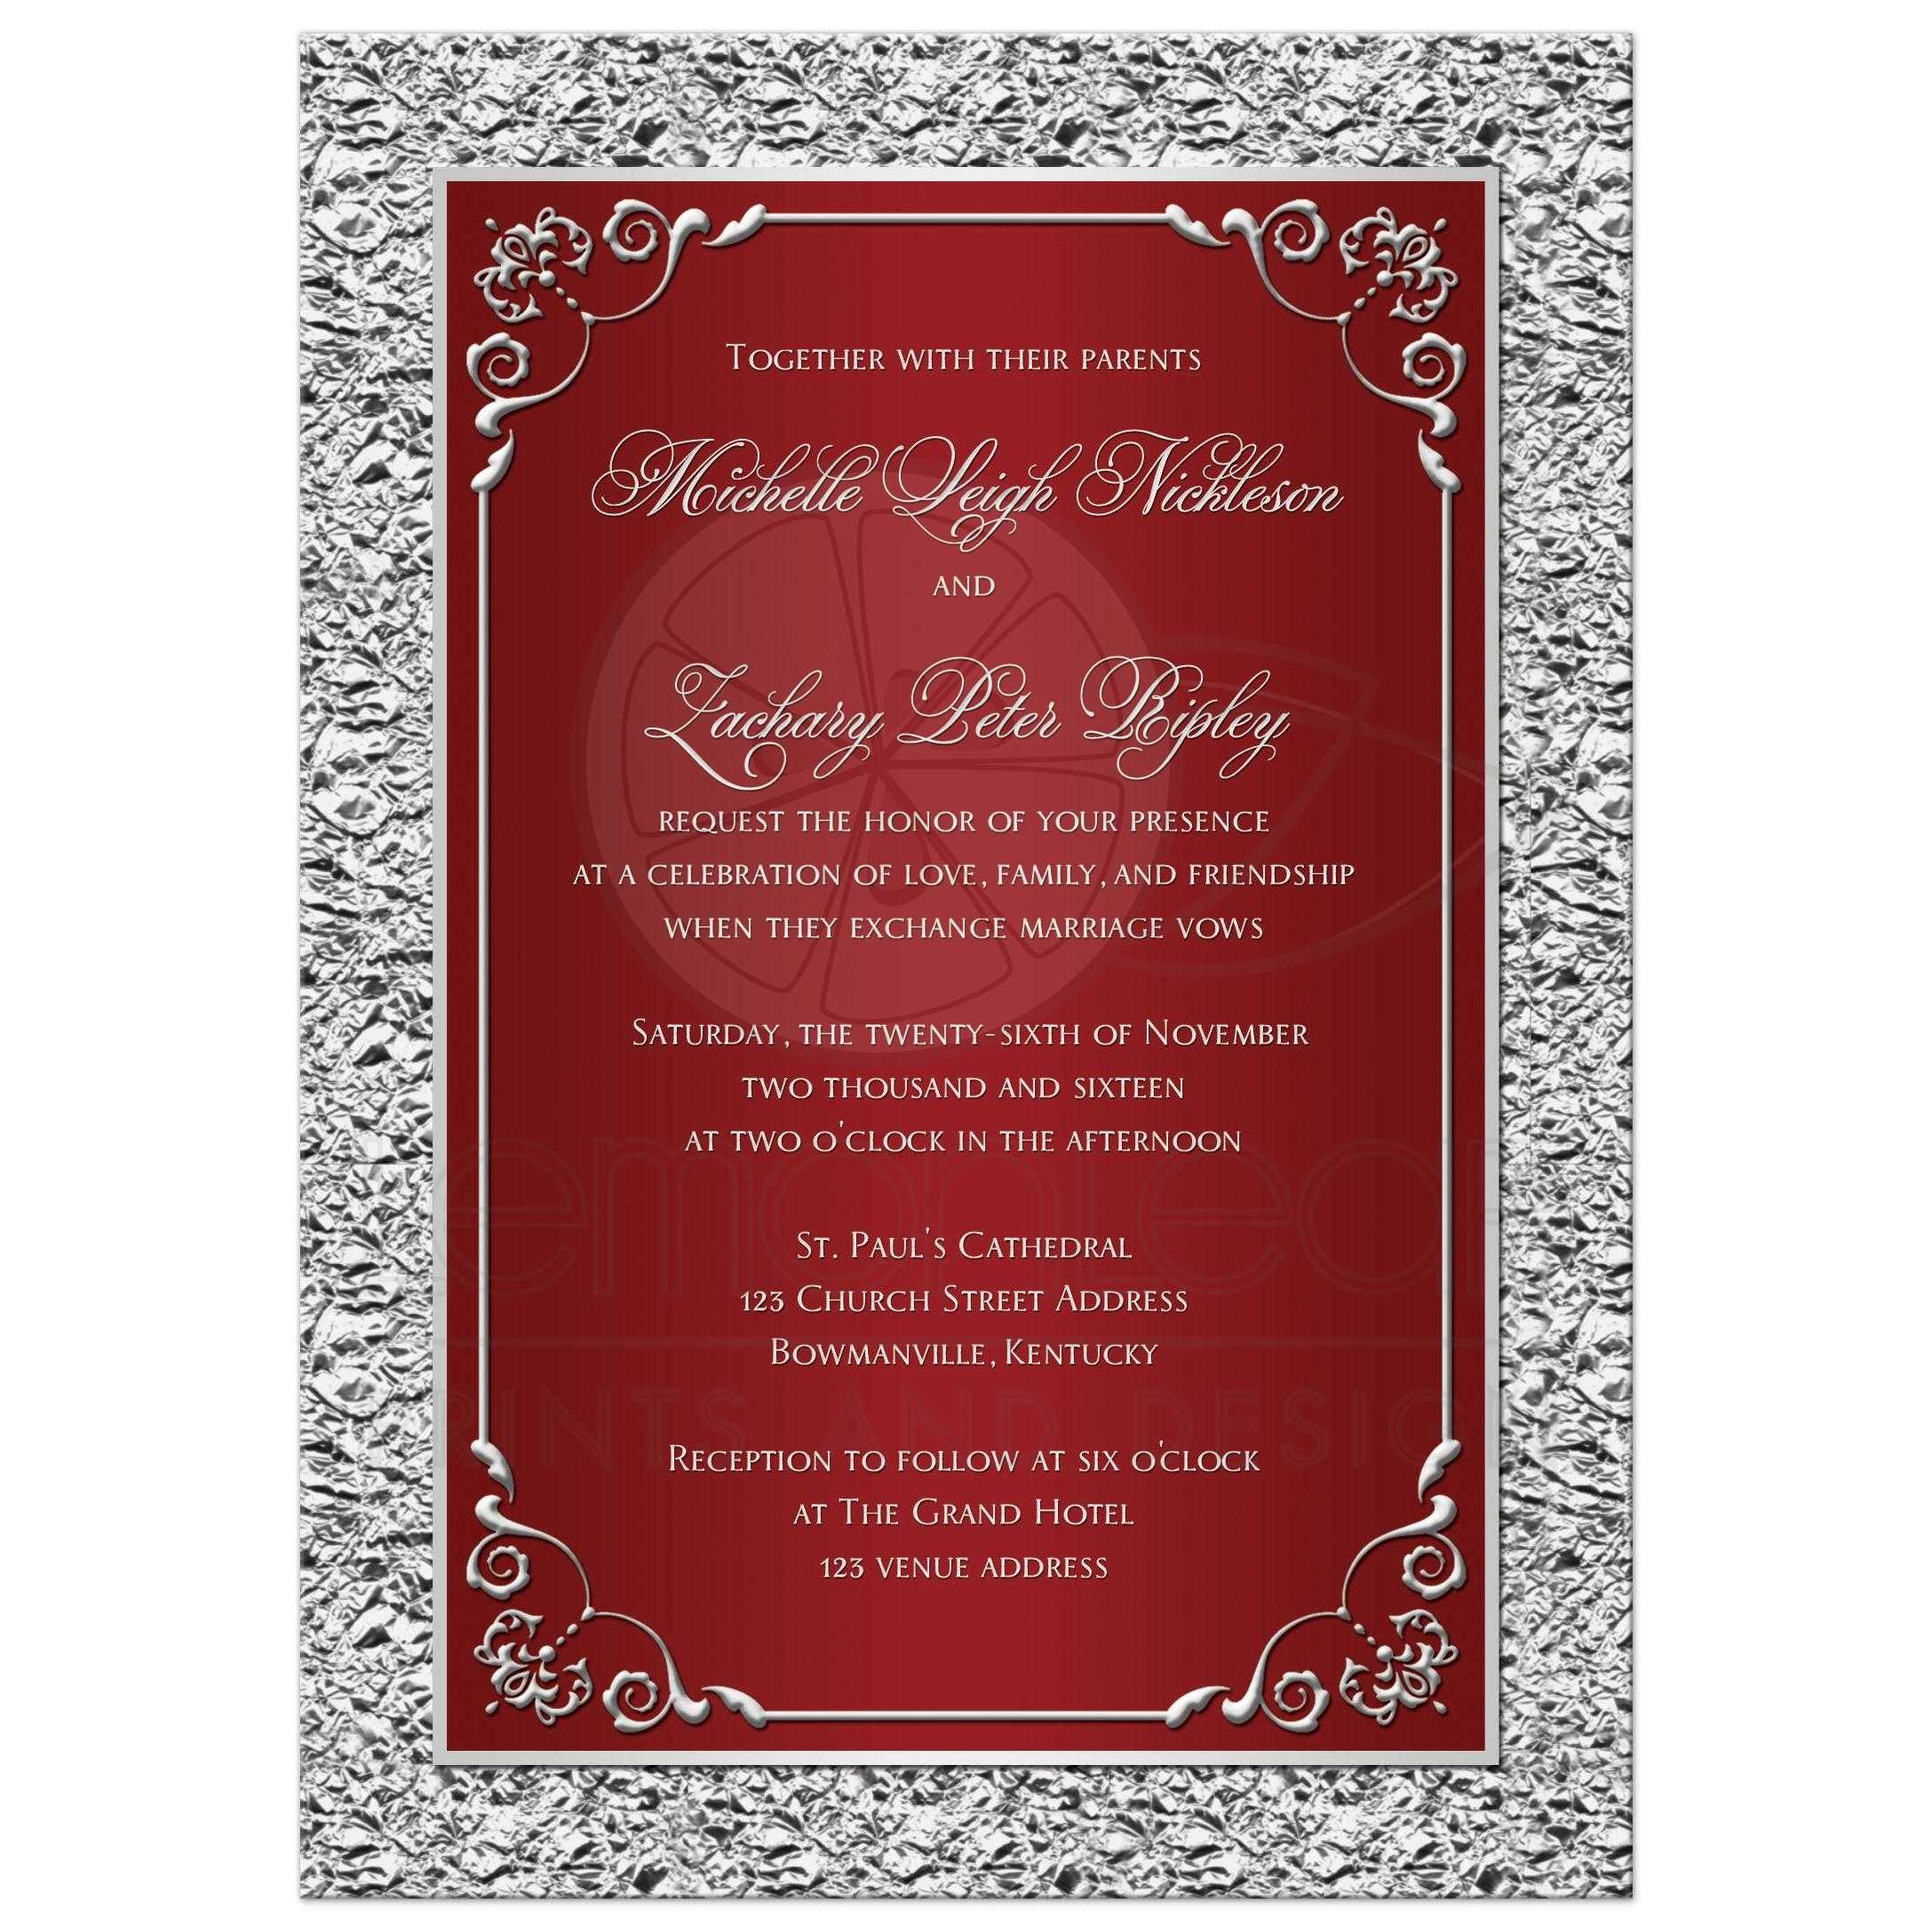 Red And Silver Gray Wedding Invitation With Ornate Scrolls